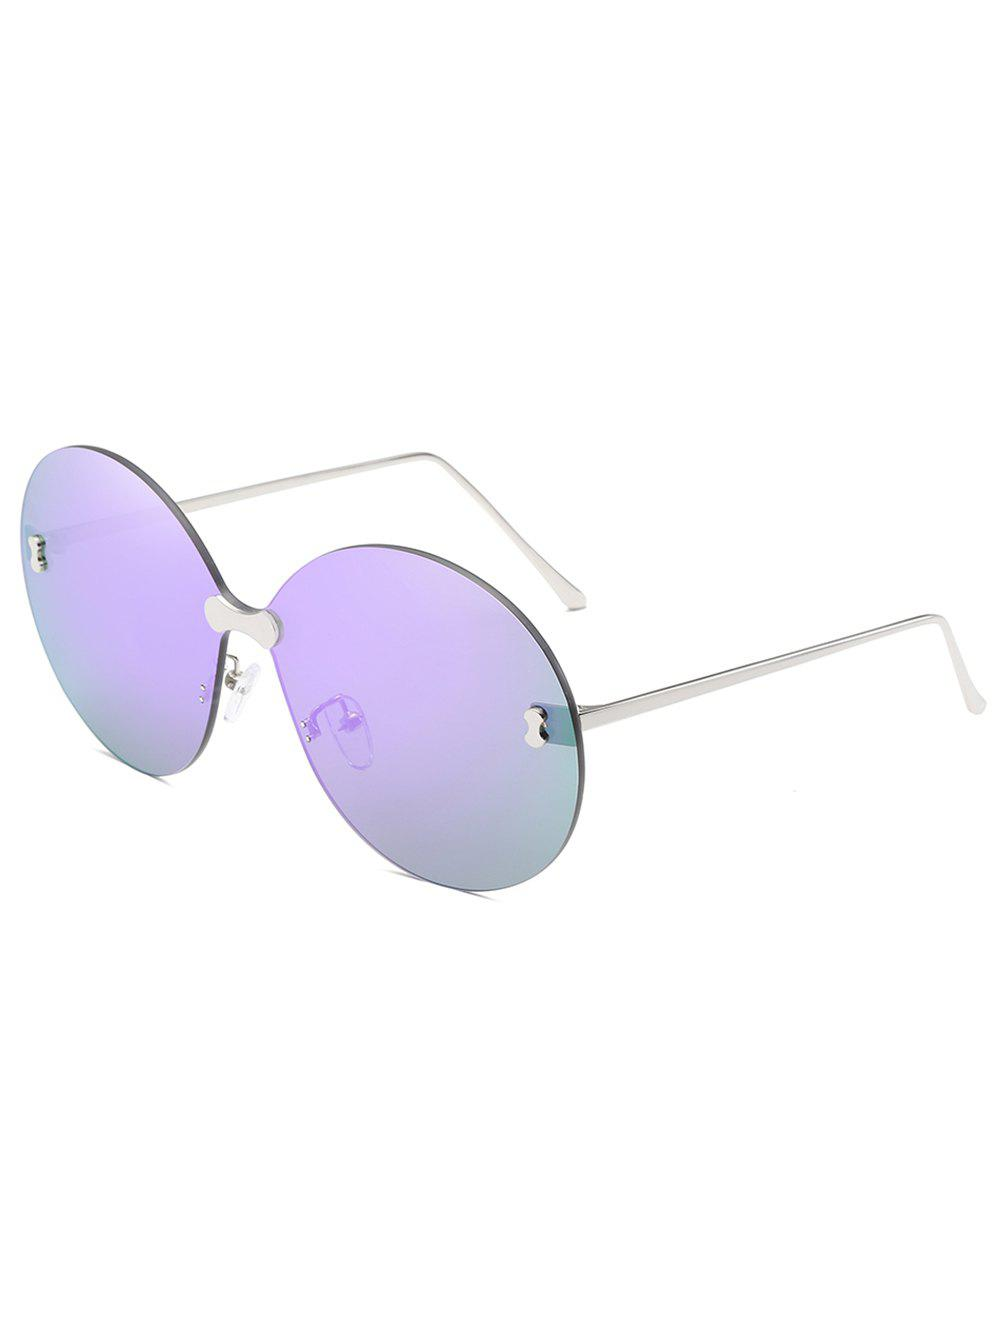 Anti Fatigue Rimless Travel Driving Sunglasses - LILAC